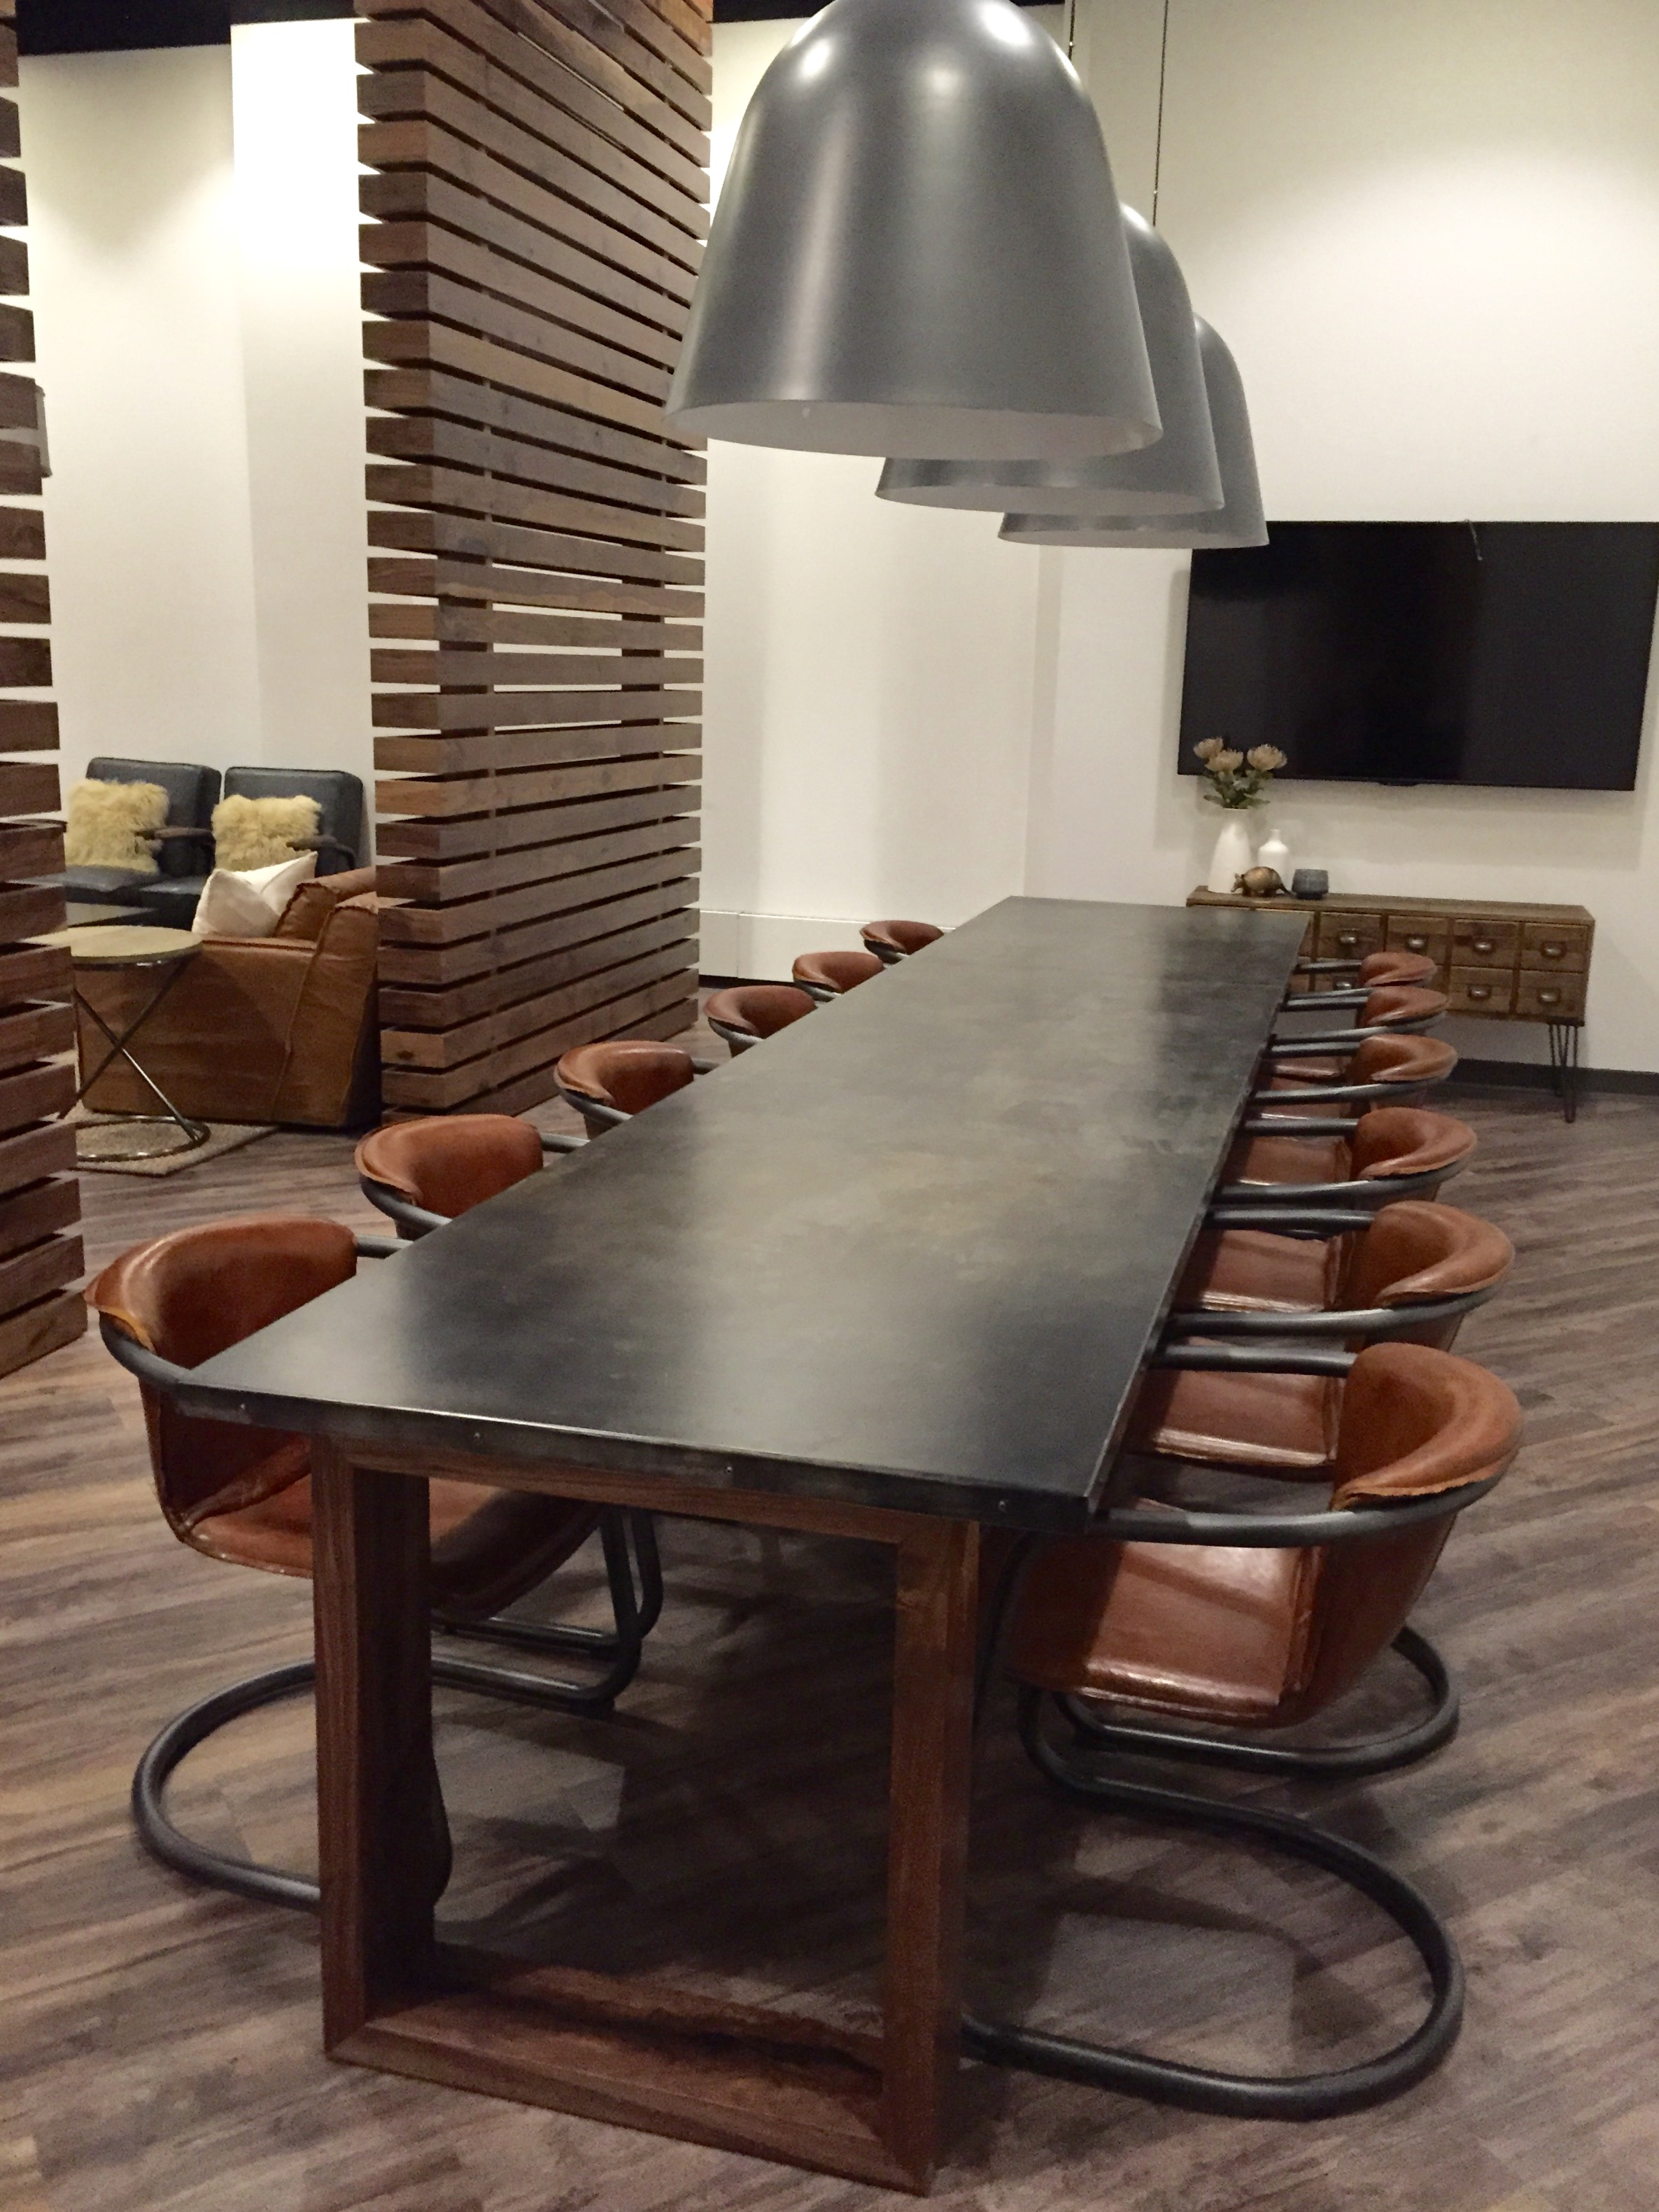 Conference table leather chairs.jpg